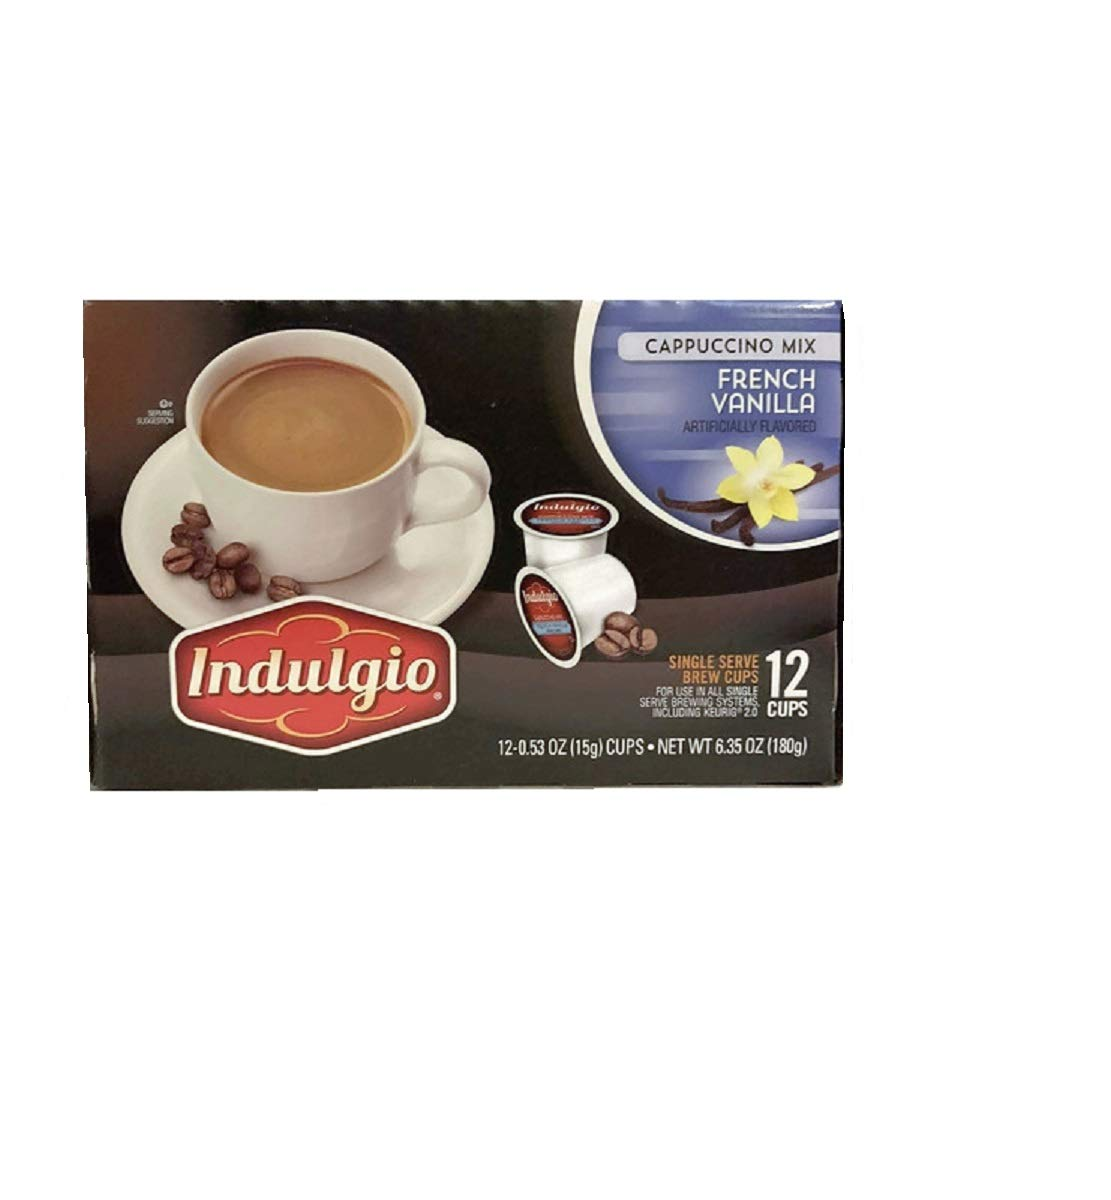 French Vanilla Cappuccino Mix Single Brew K Cups by Indulgio. 12 K Cups per box.Enjoy the Vanilla Flavor with each sip.